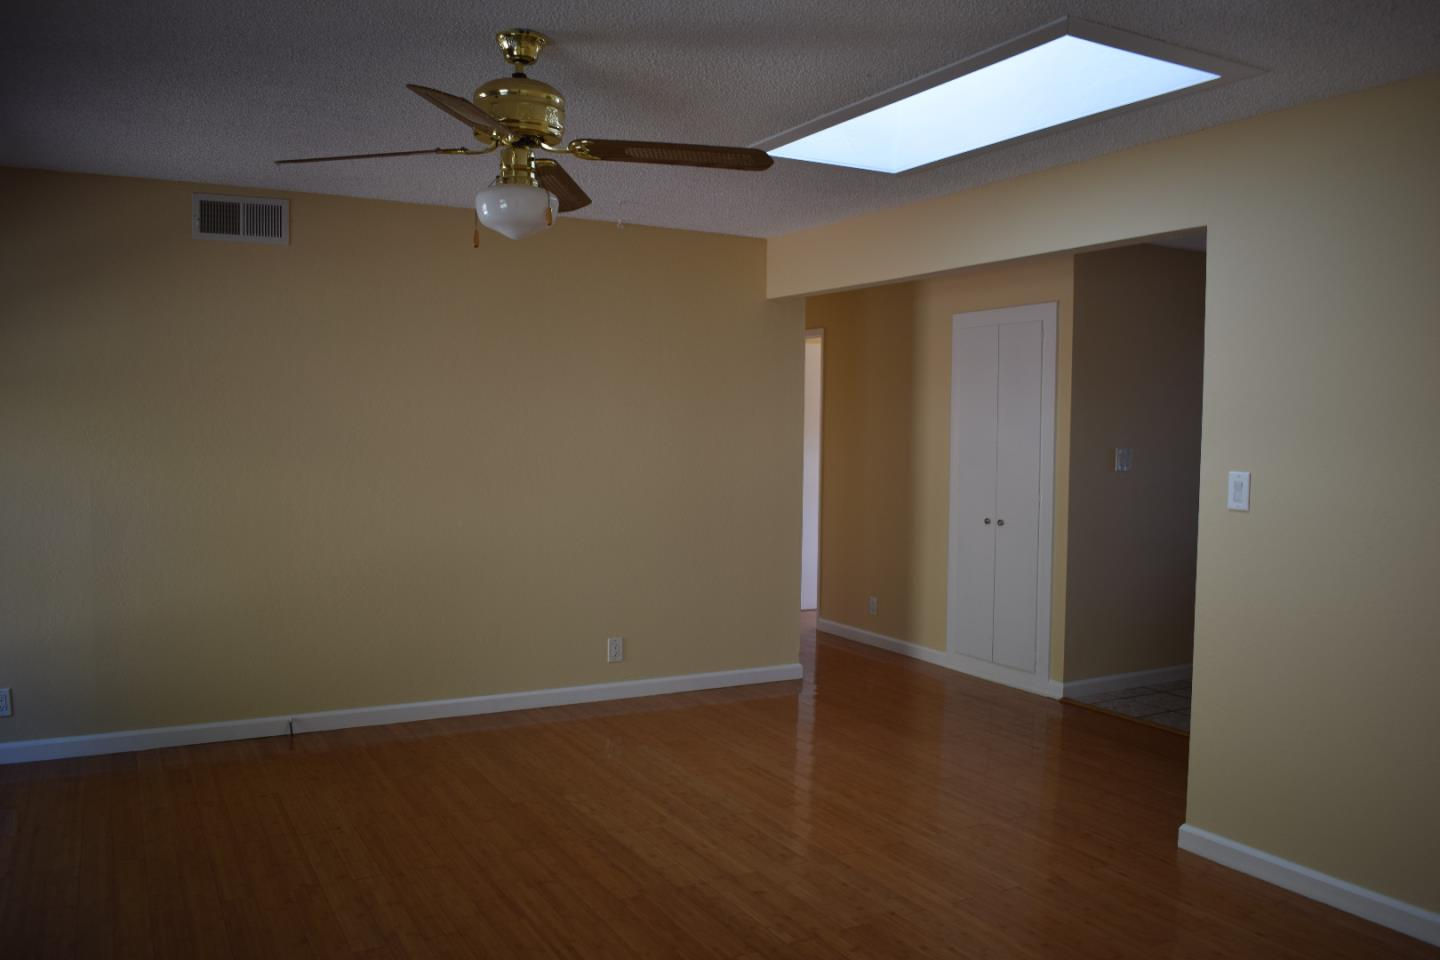 Additional photo for property listing at 1550 Kildare Way  Pinole, カリフォルニア 94564 アメリカ合衆国